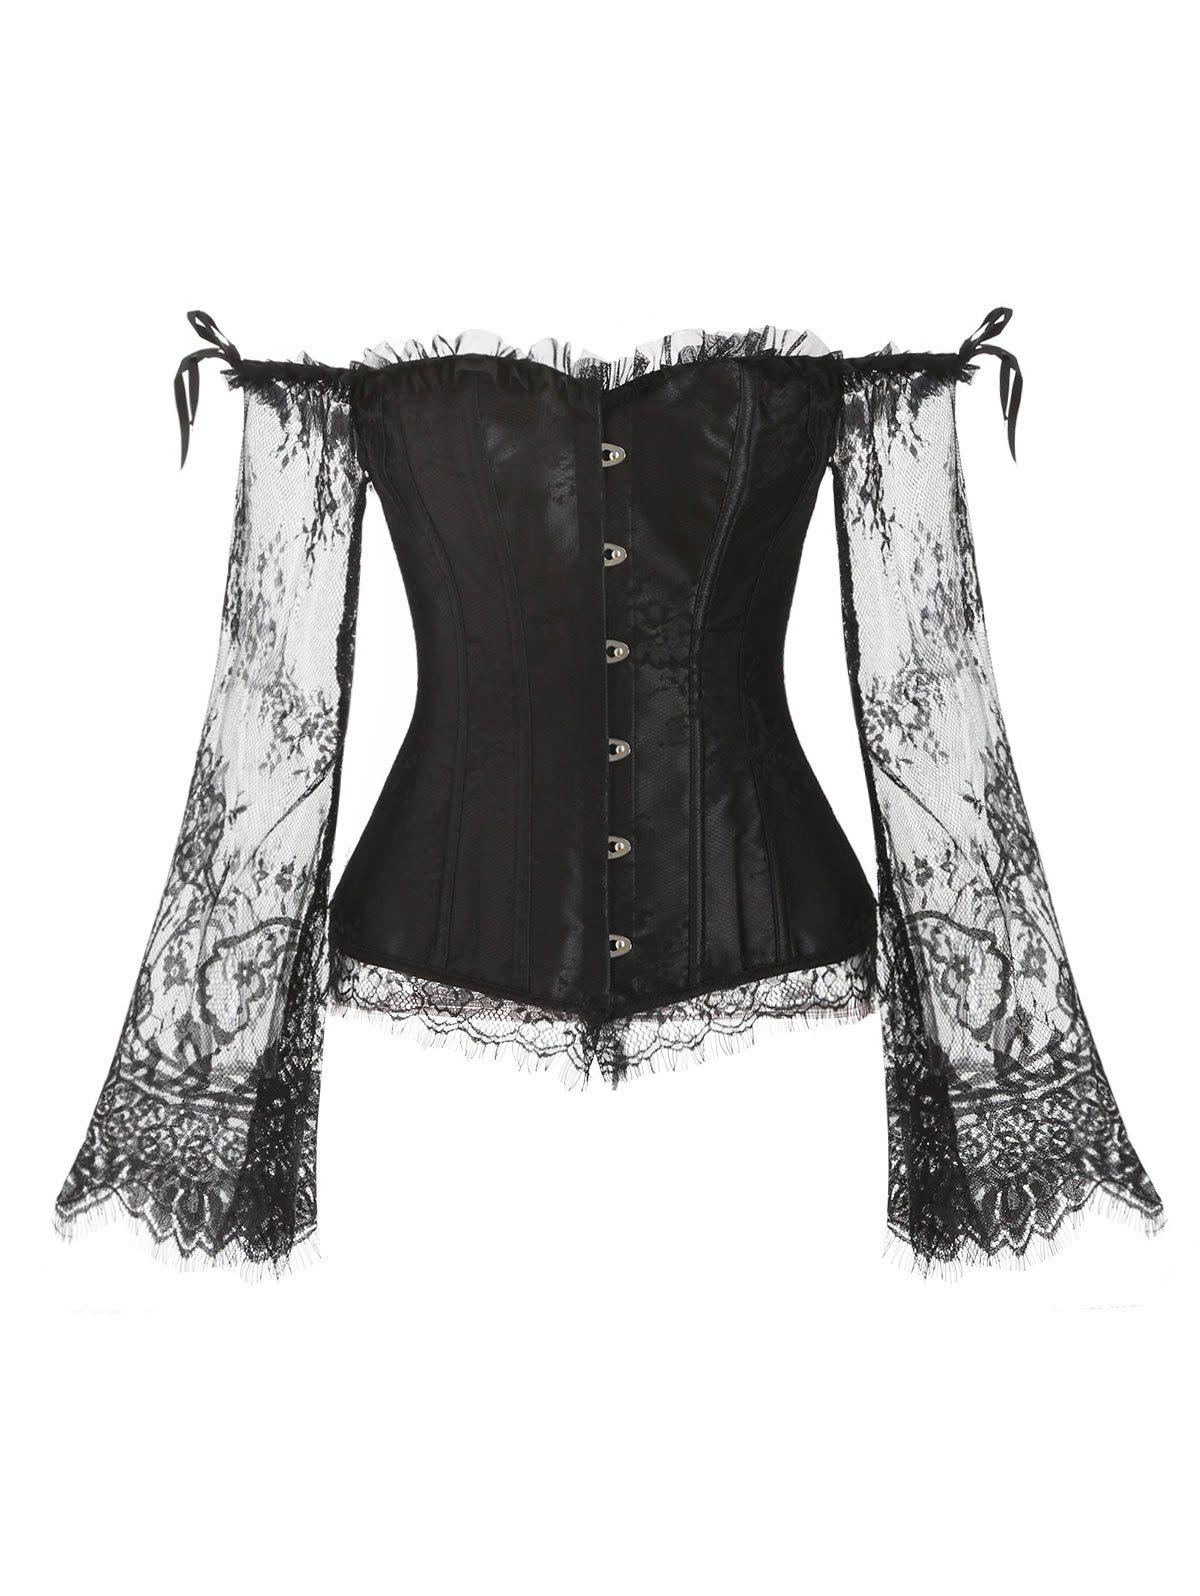 Outfit Ruffles Lace Sleeves Steel Boned Corset Set